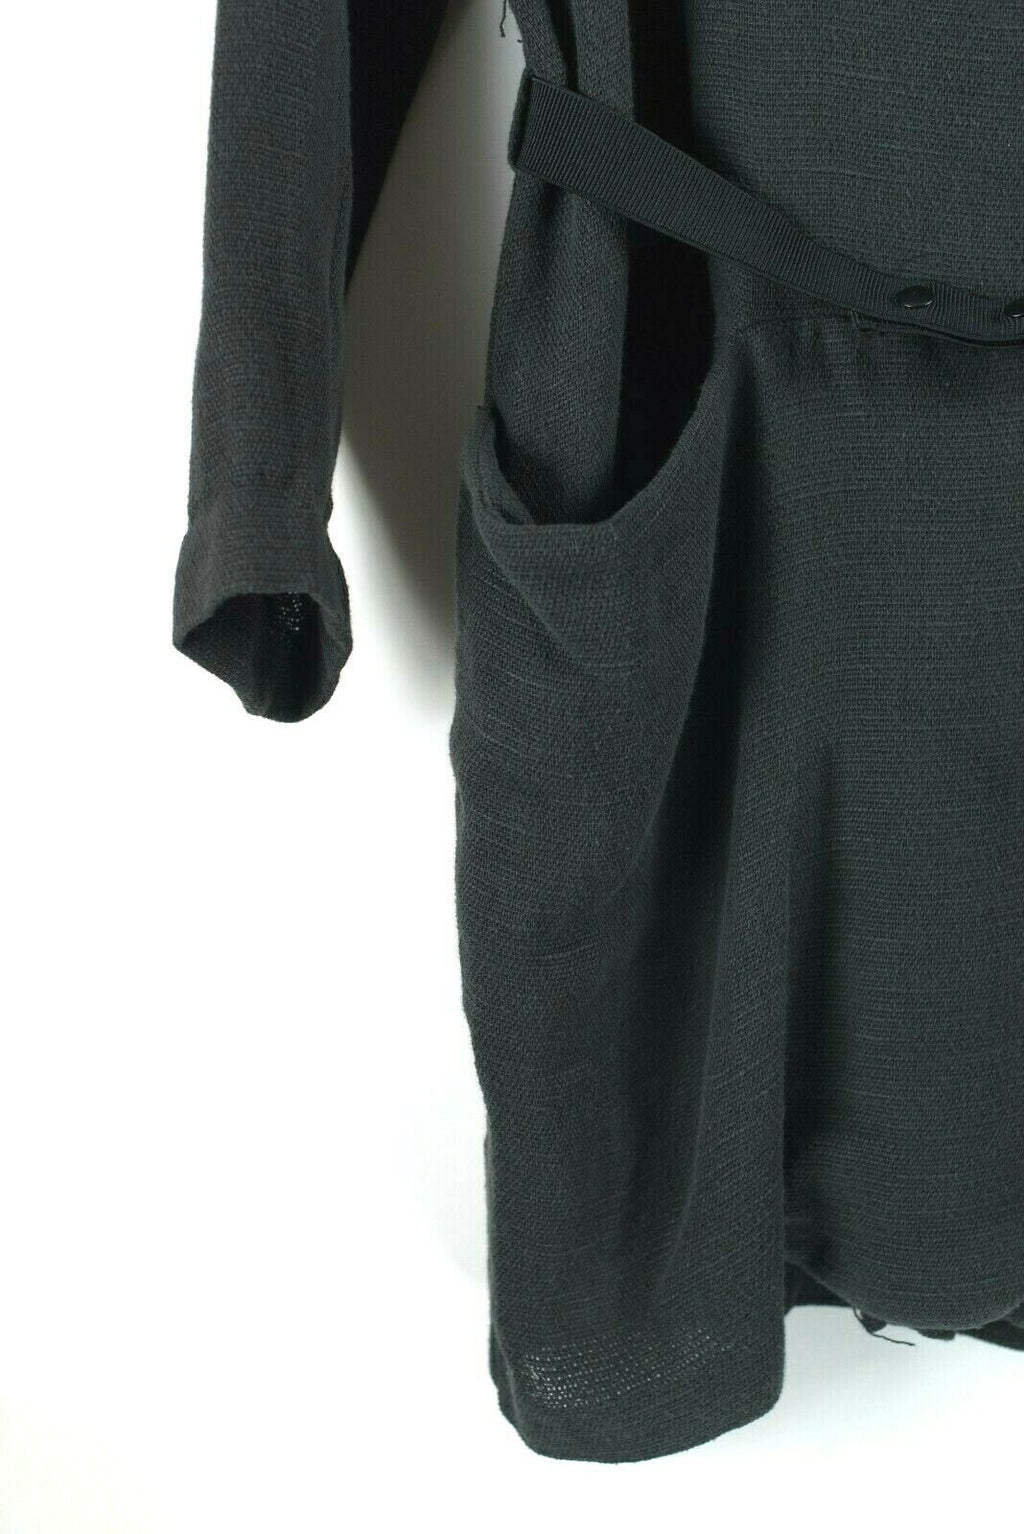 Stem From Womens Size Small Charcoal Grey Coat Midi Smudge Jacket Open Front NWT